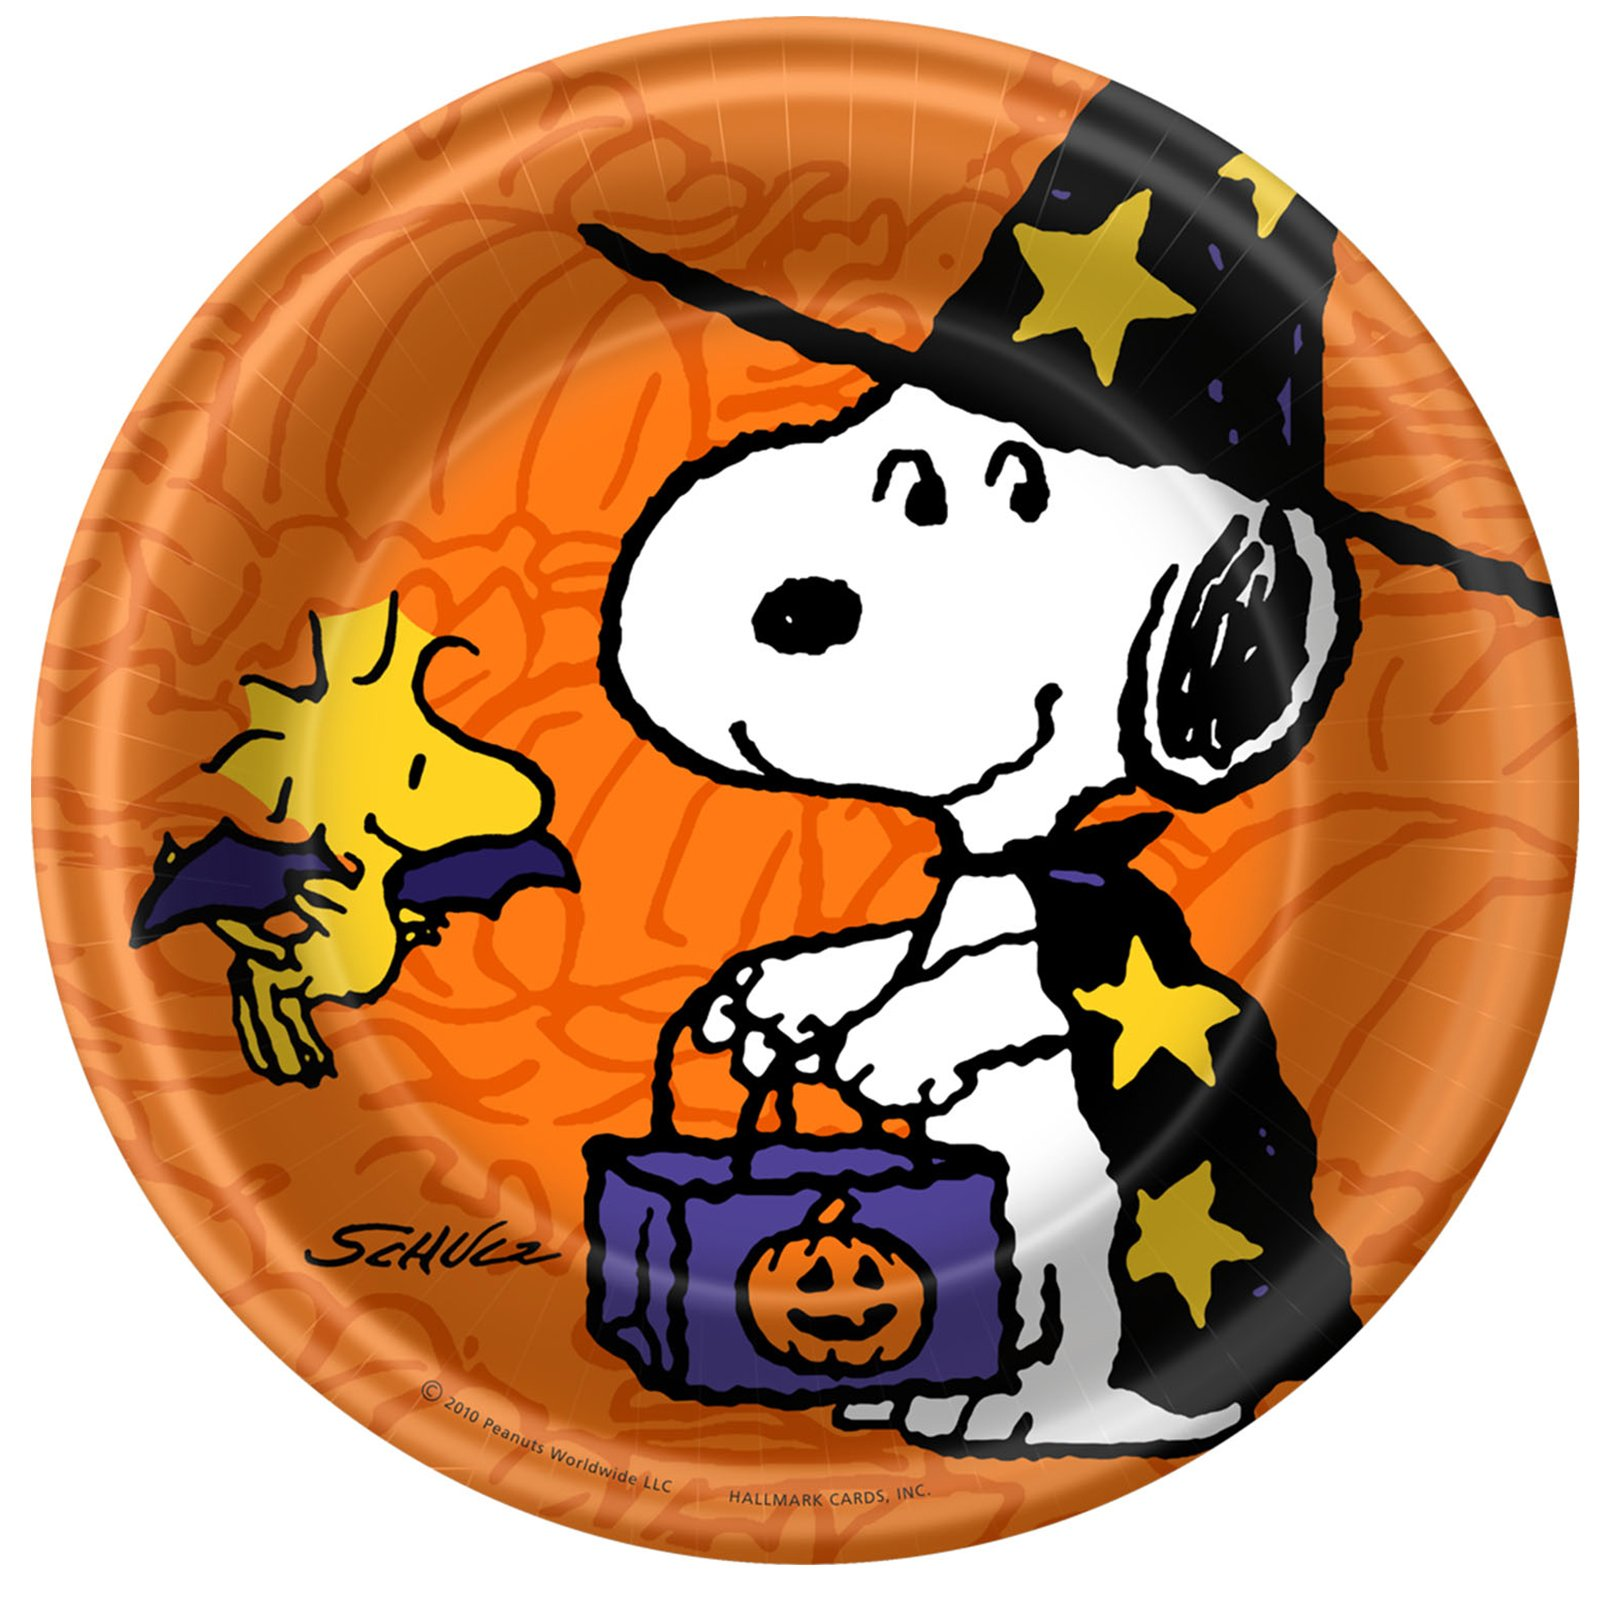 Charlie Brown Characters Clipart At Getdrawings Com Free For